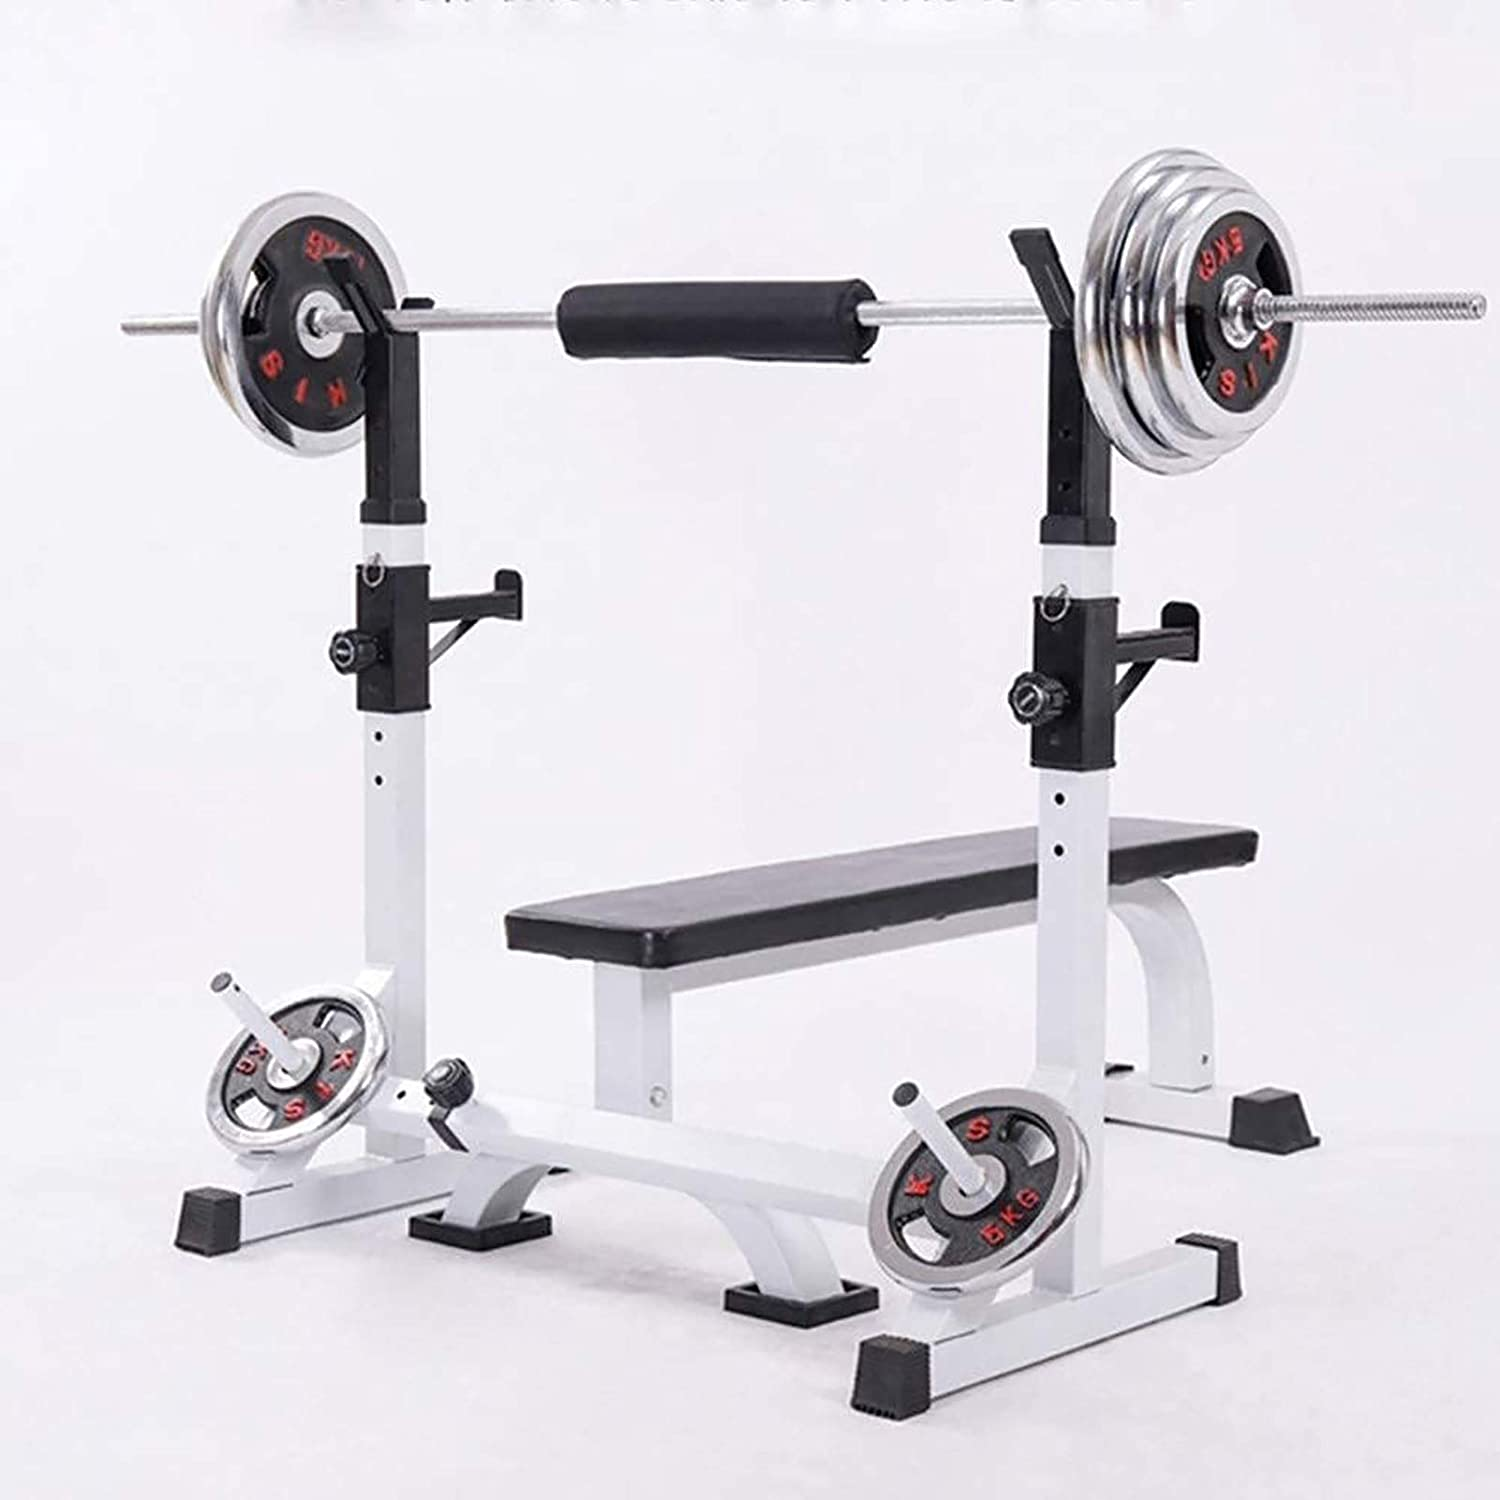 Max Load 260 Kg Adjustable Dumbbell Rack For Home Gym Fitness Weight Lifting PLAYH Barbell Stand Squat Rack Height Adjustment